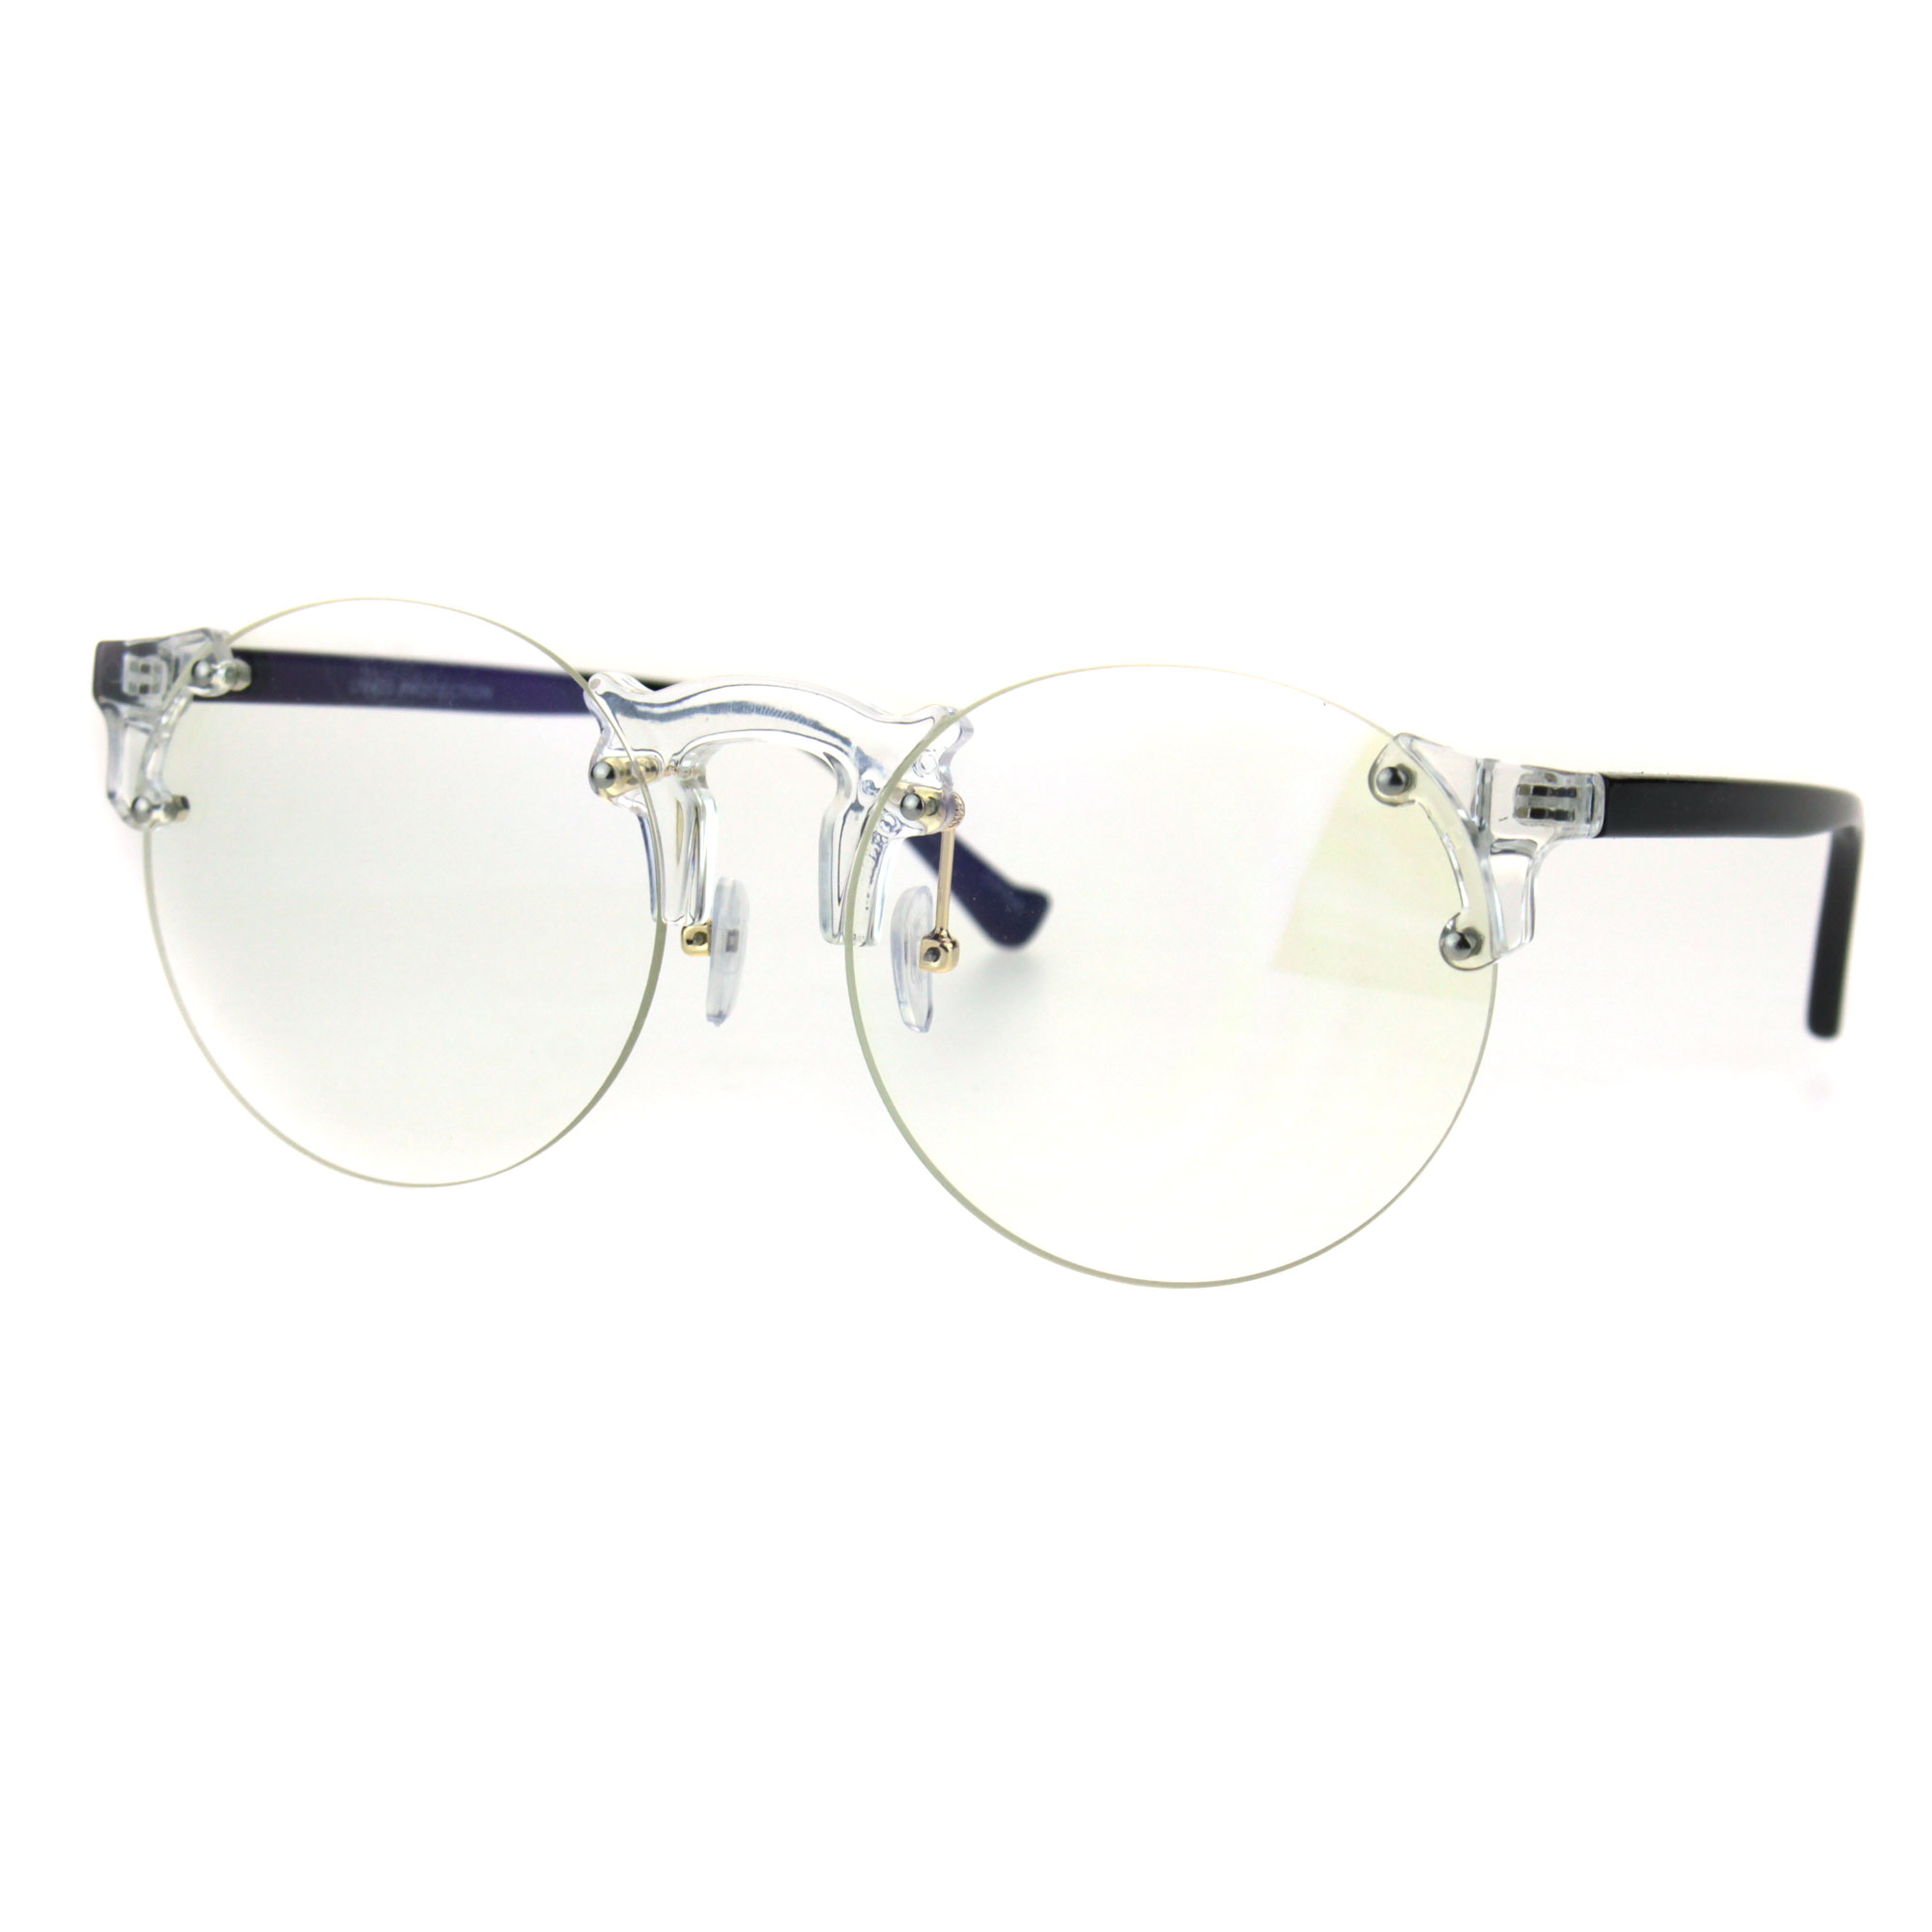 db3aae3458 Retro Hipster Clear Lens and Frame Round Plastic Rimless Eye Glasses Clear  Black - Walmart.com